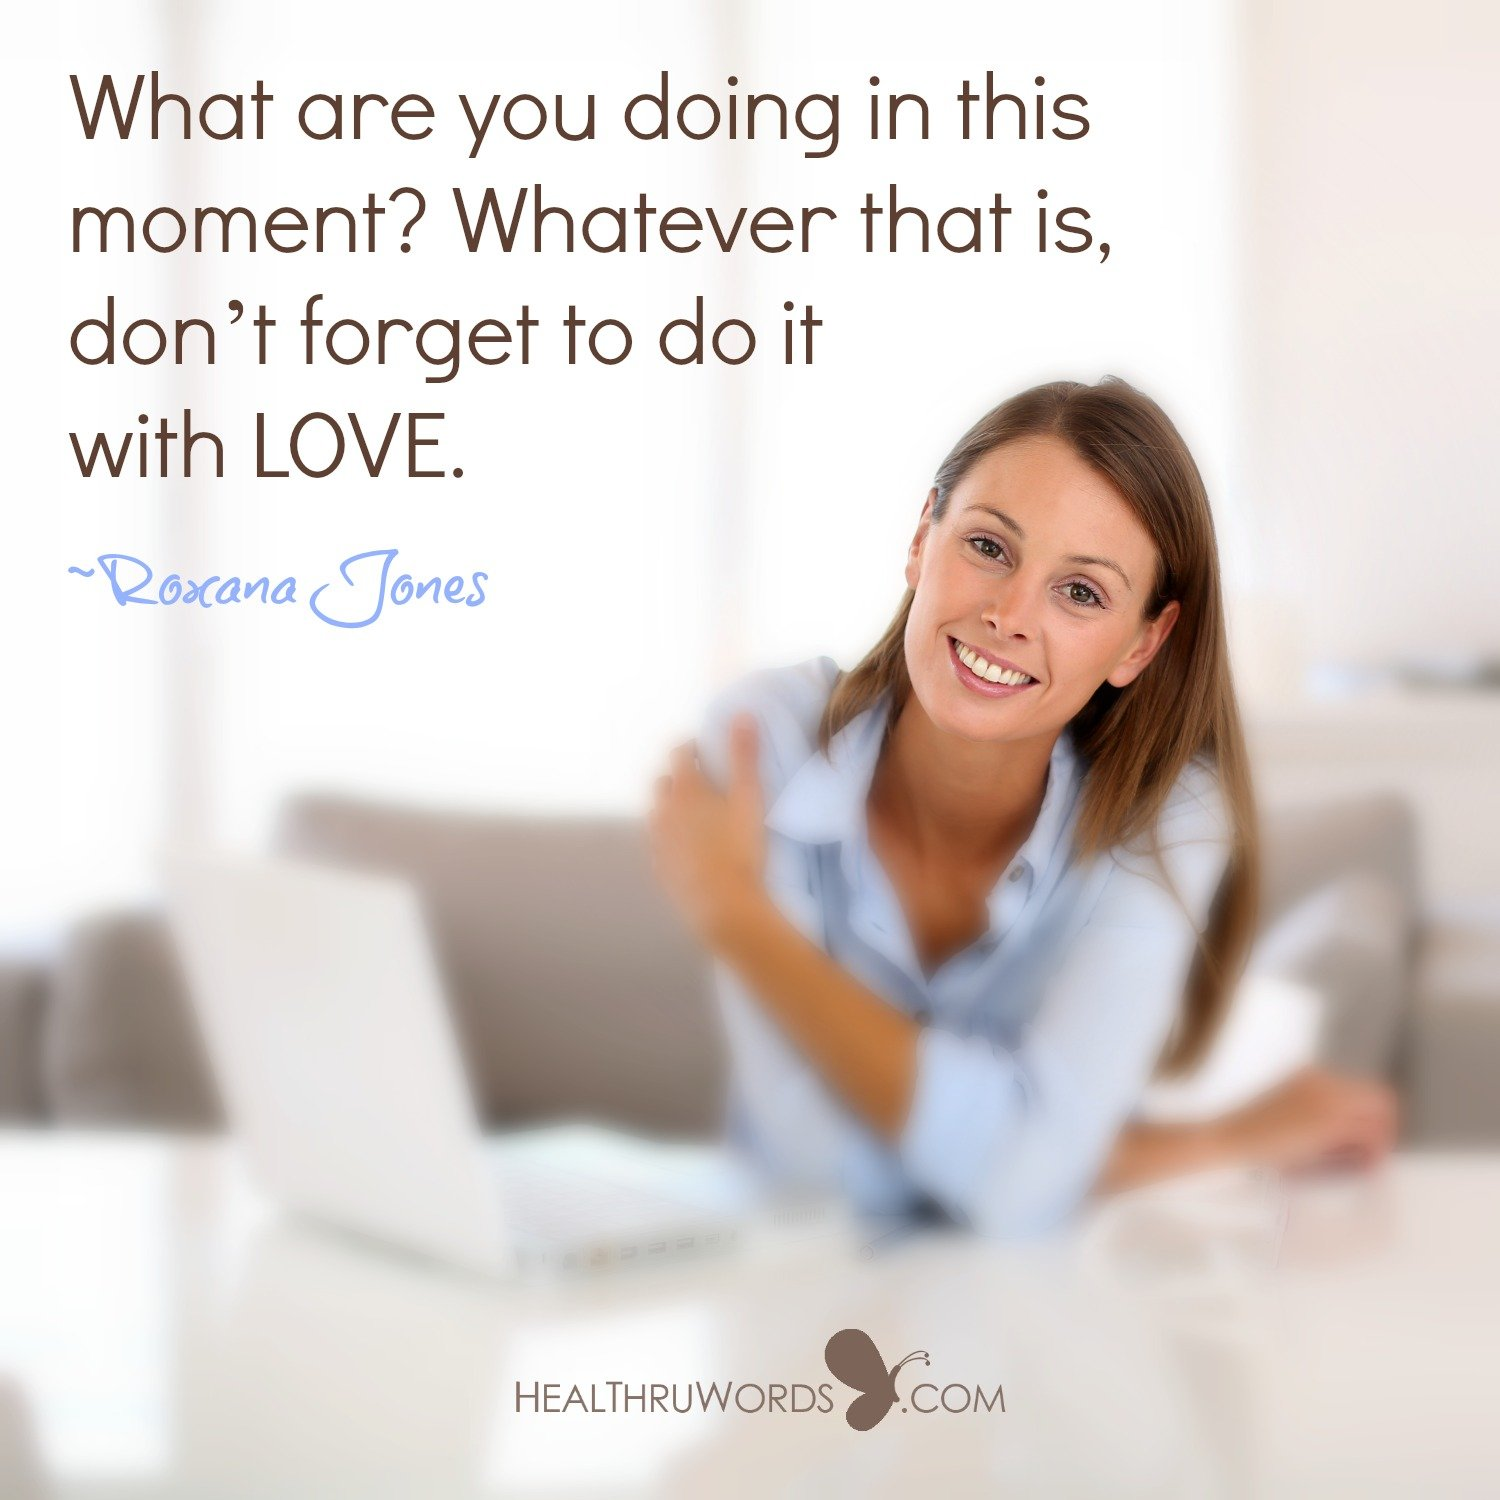 Inspirational Image: Loving the Now